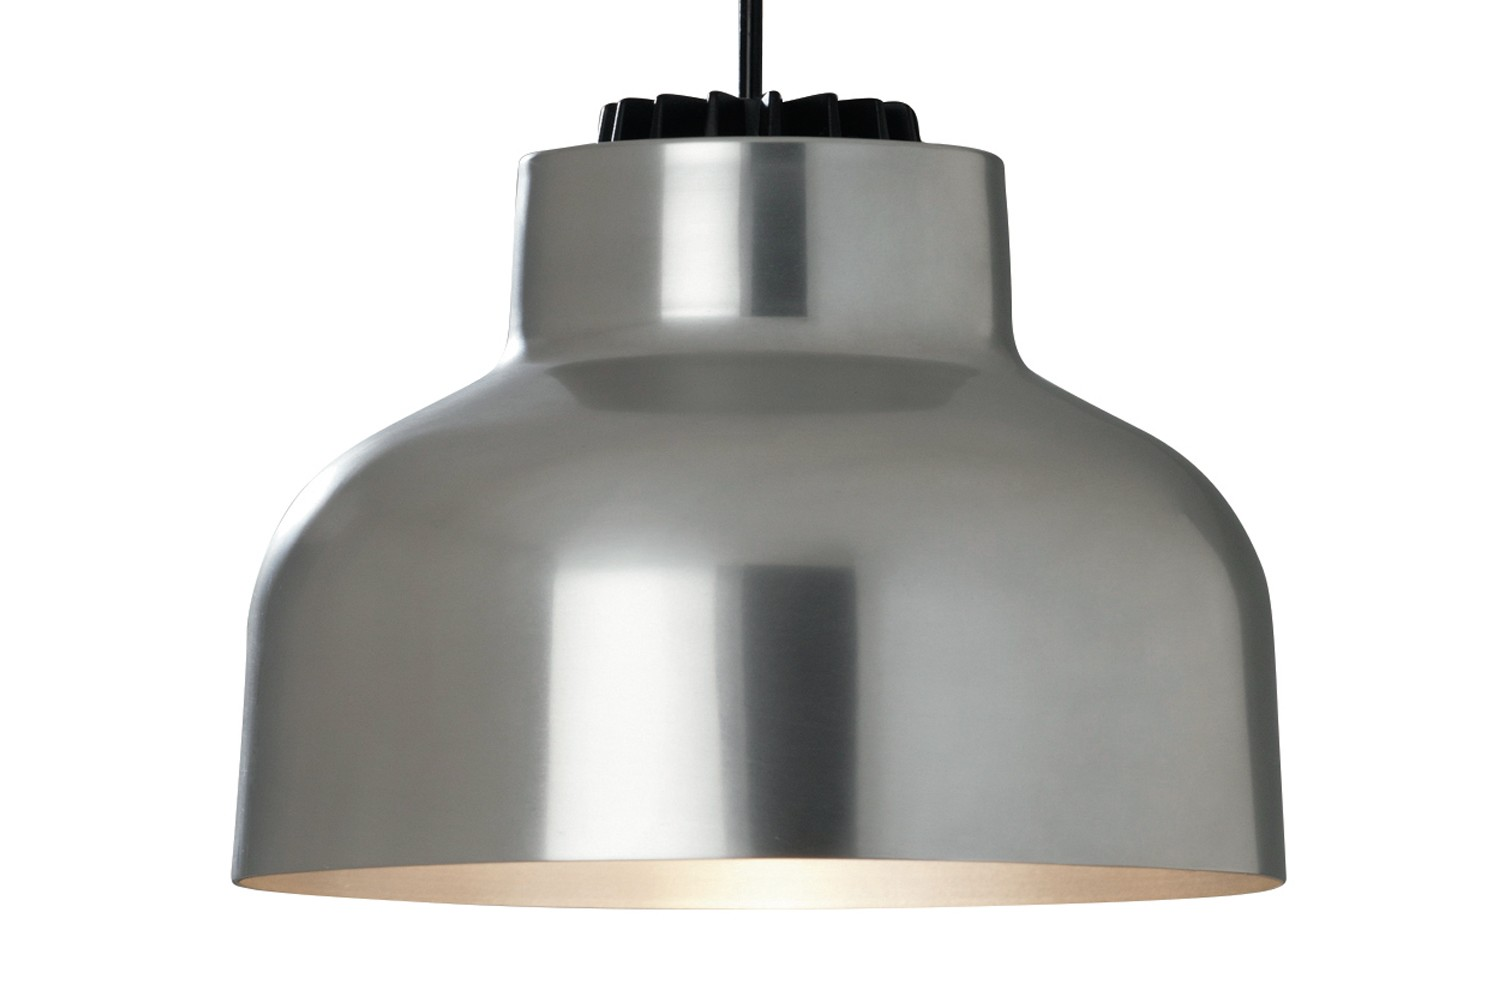 M64 Pendant Light White built-in - Not Dimmable, Polished aluminium, 300